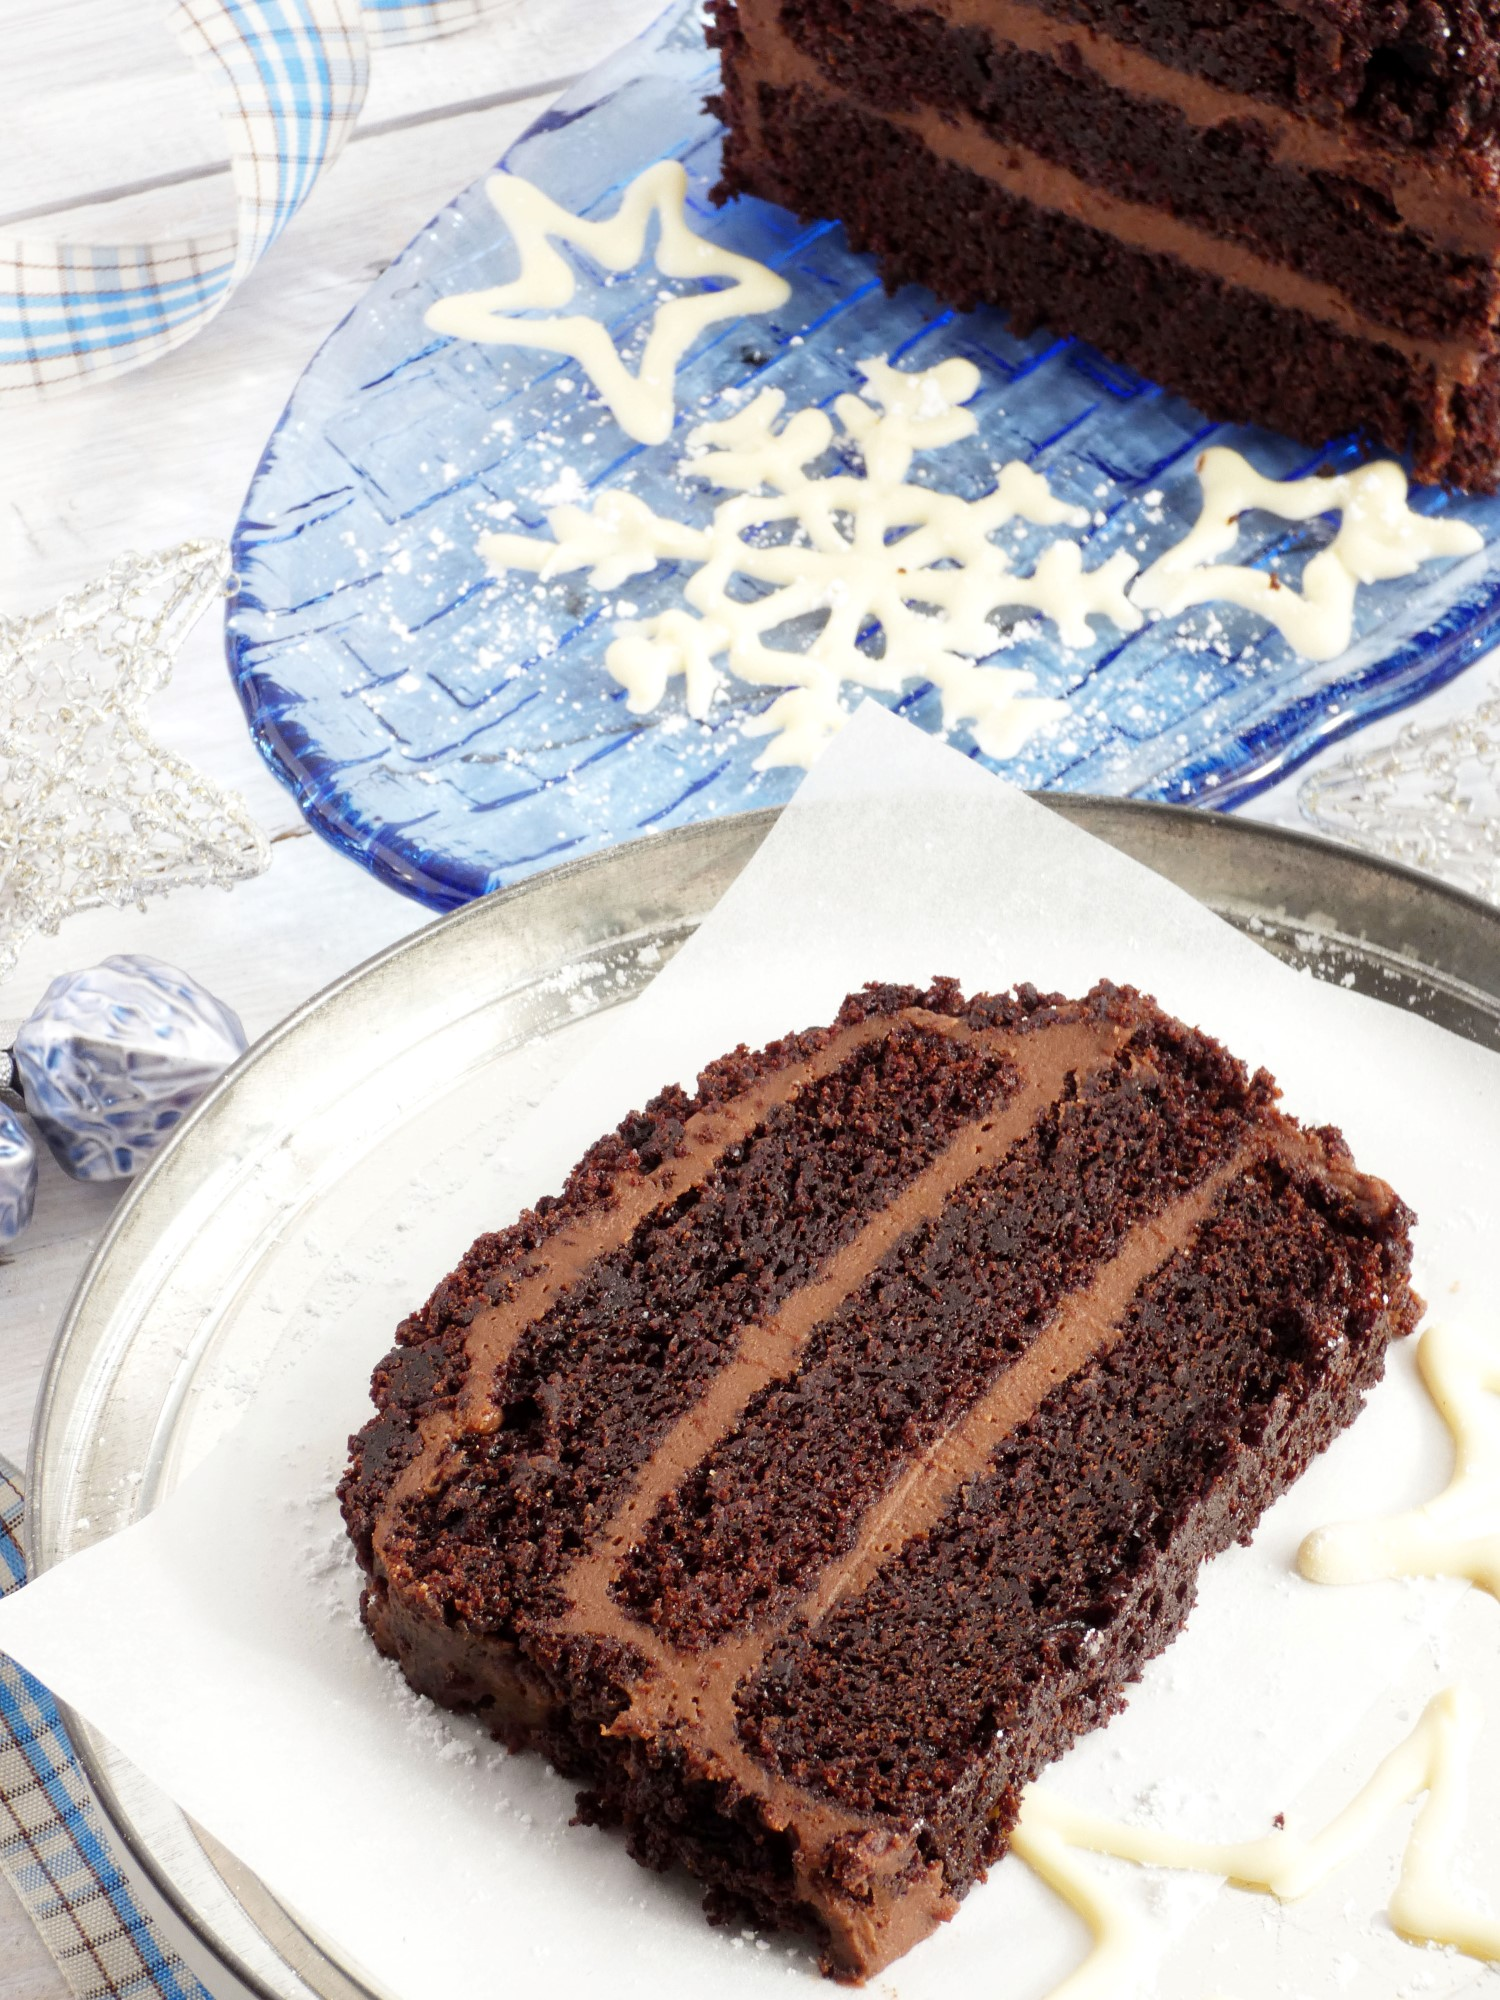 chocolate cake with chocolate cream filling